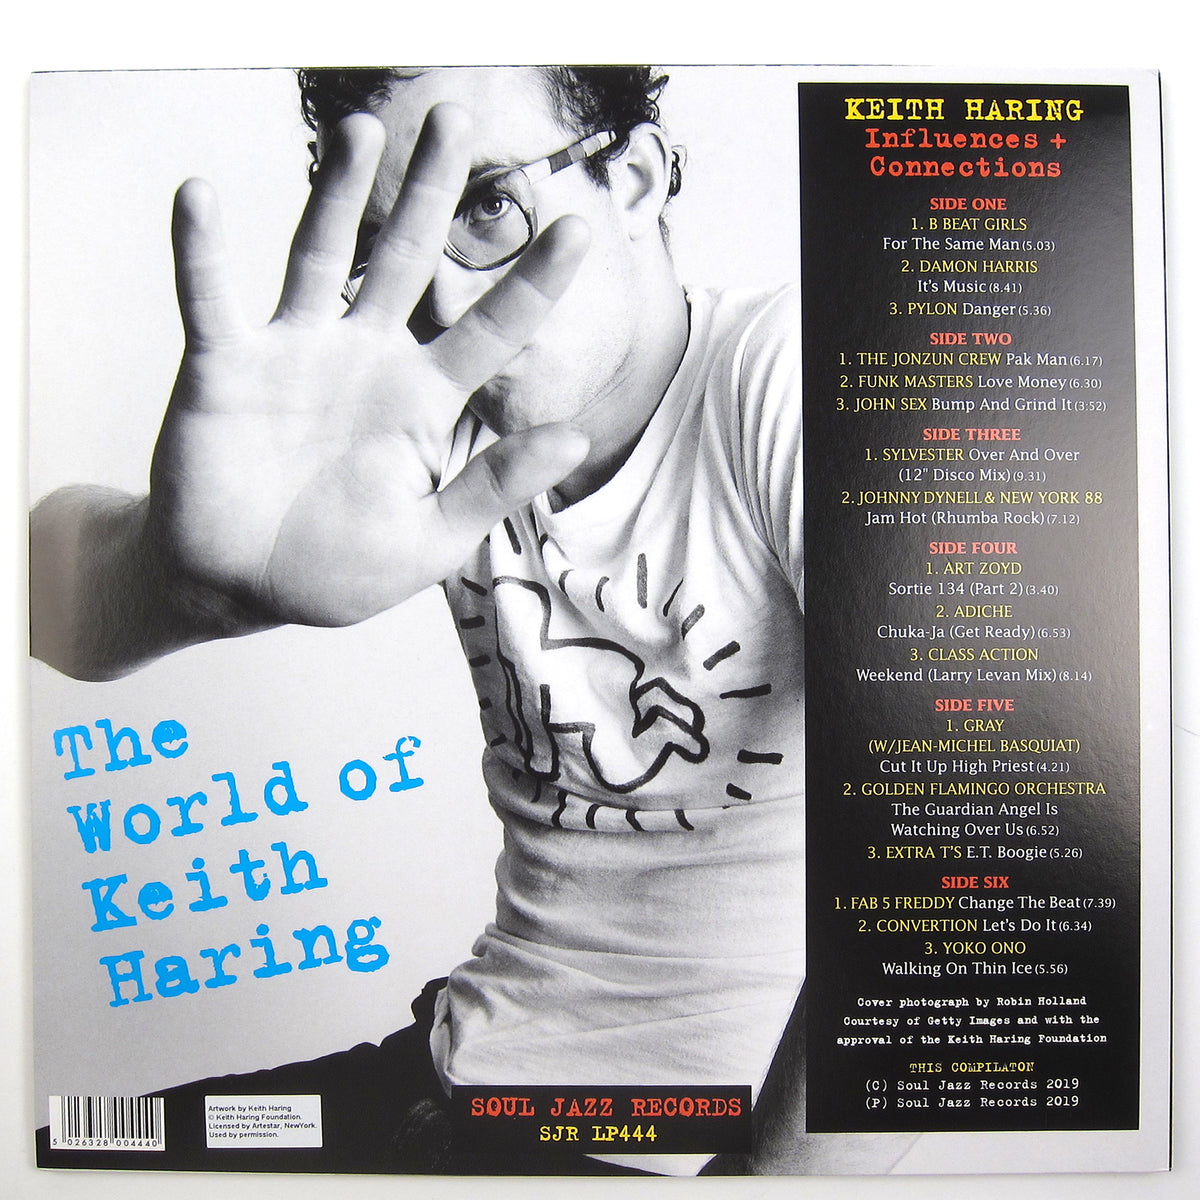 Soul Jazz Records: The World of Keith Haring Vinyl 3LP+7""